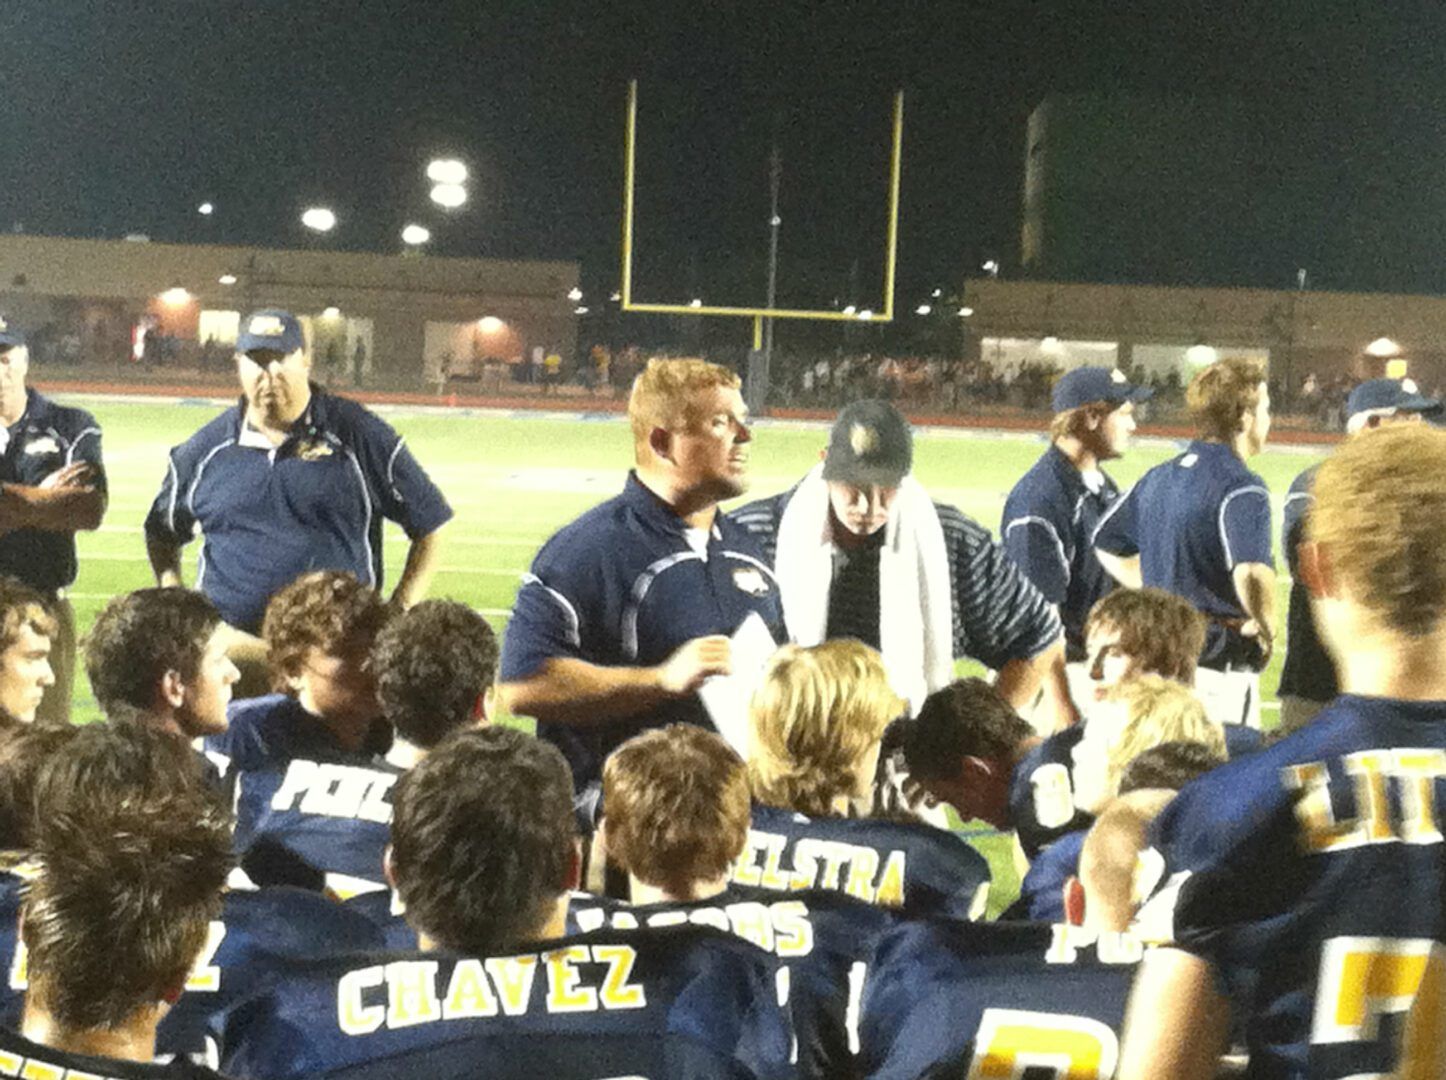 Grand Haven football coach Mike Farley calls it quits, takes assistant job in Georgia